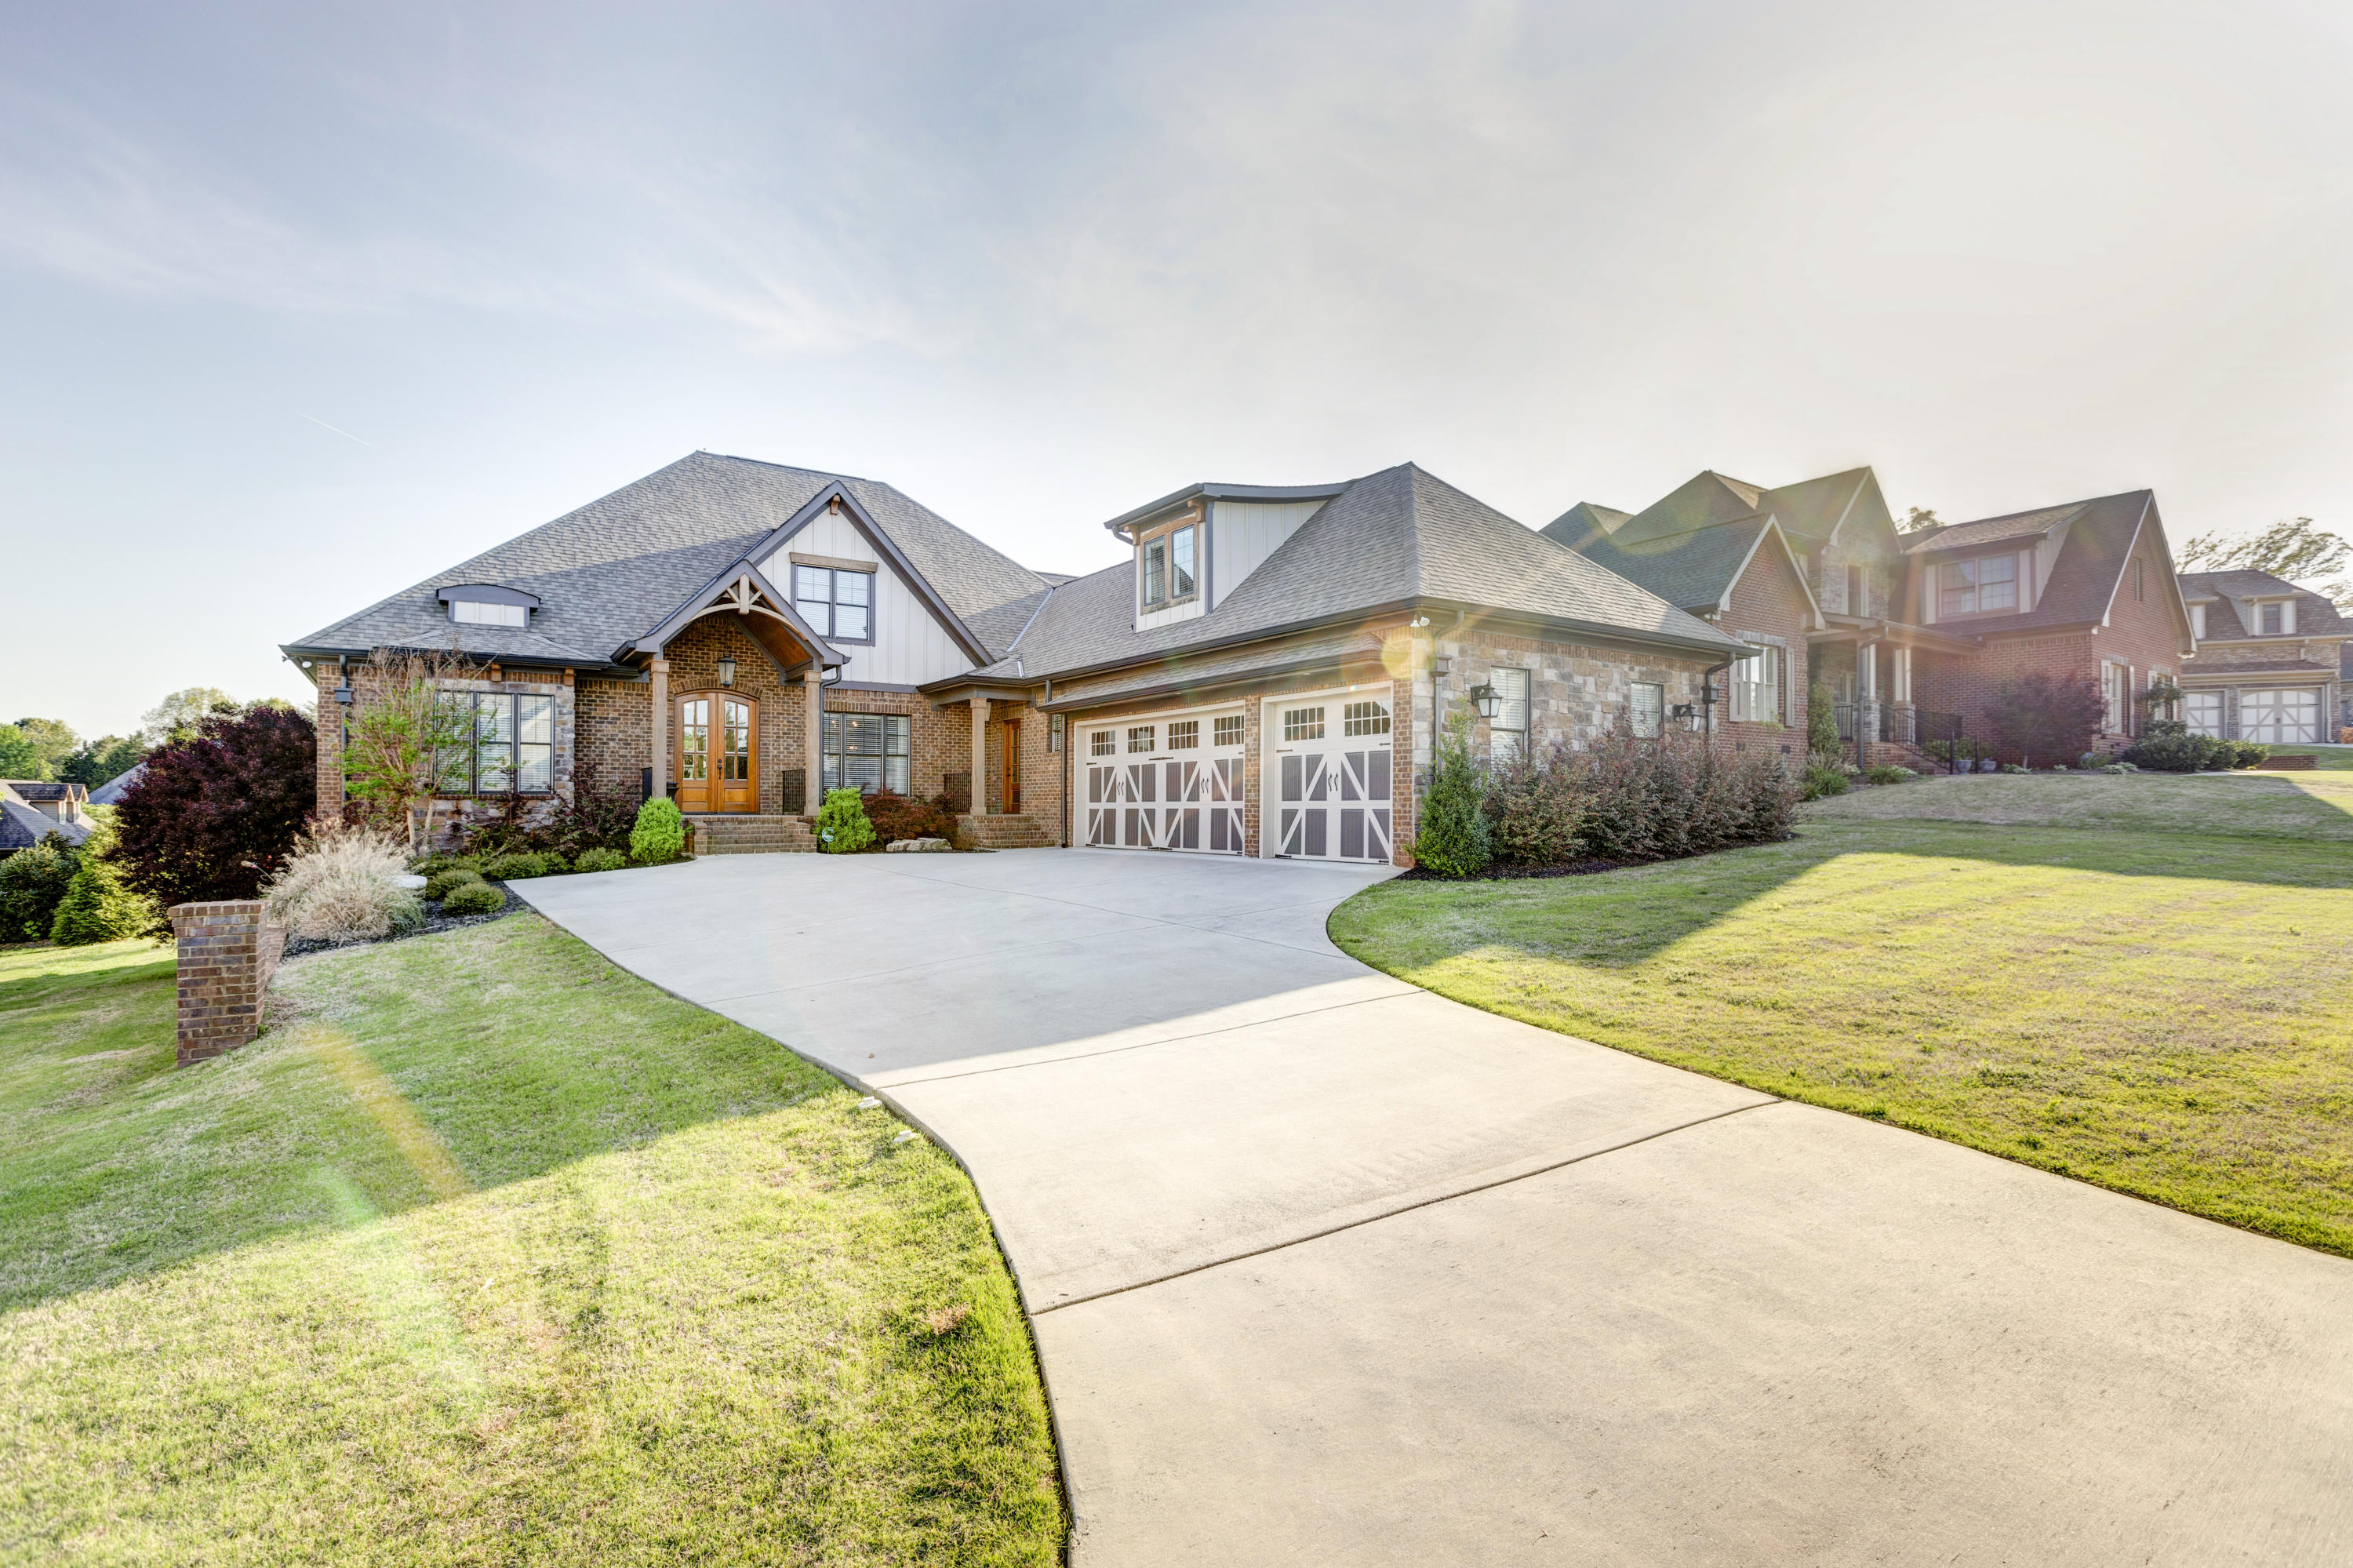 8054 Hampton Cove Dr, Ooltewah, TN 37363